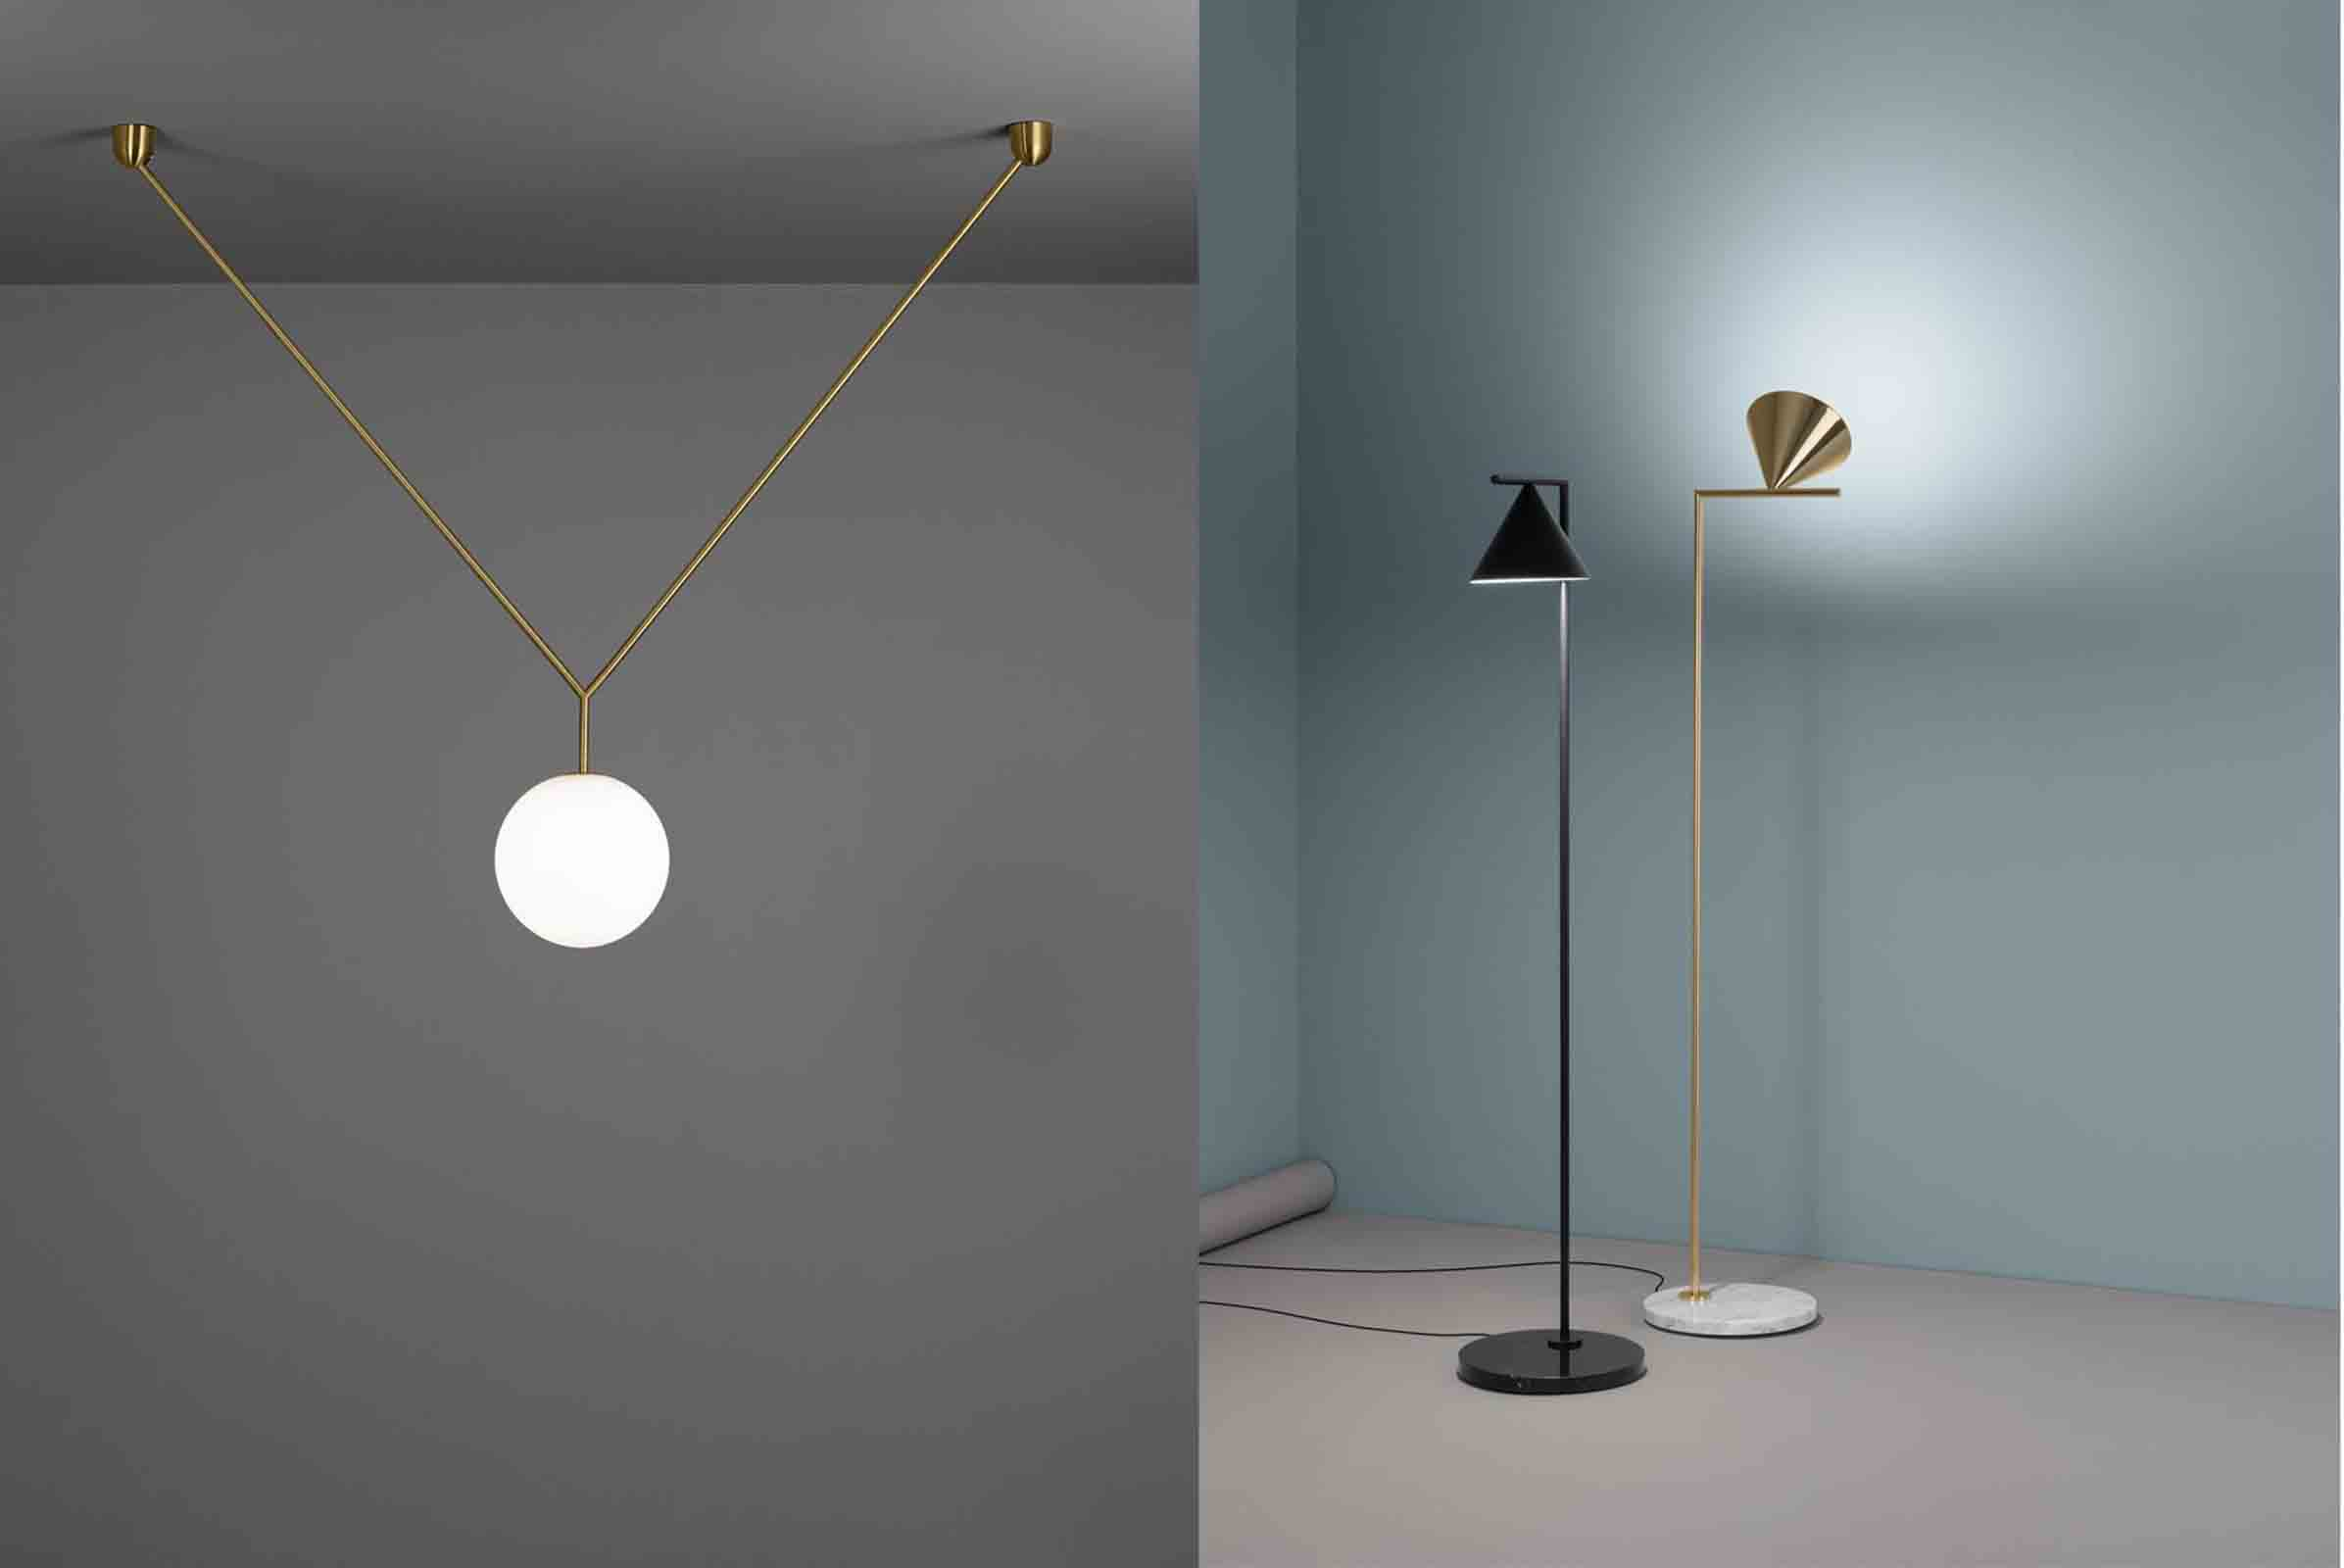 'Notch' pendant (left) and 'Captain Flint' floor lamps (right) both designed by Michael Anastassiades for Flos